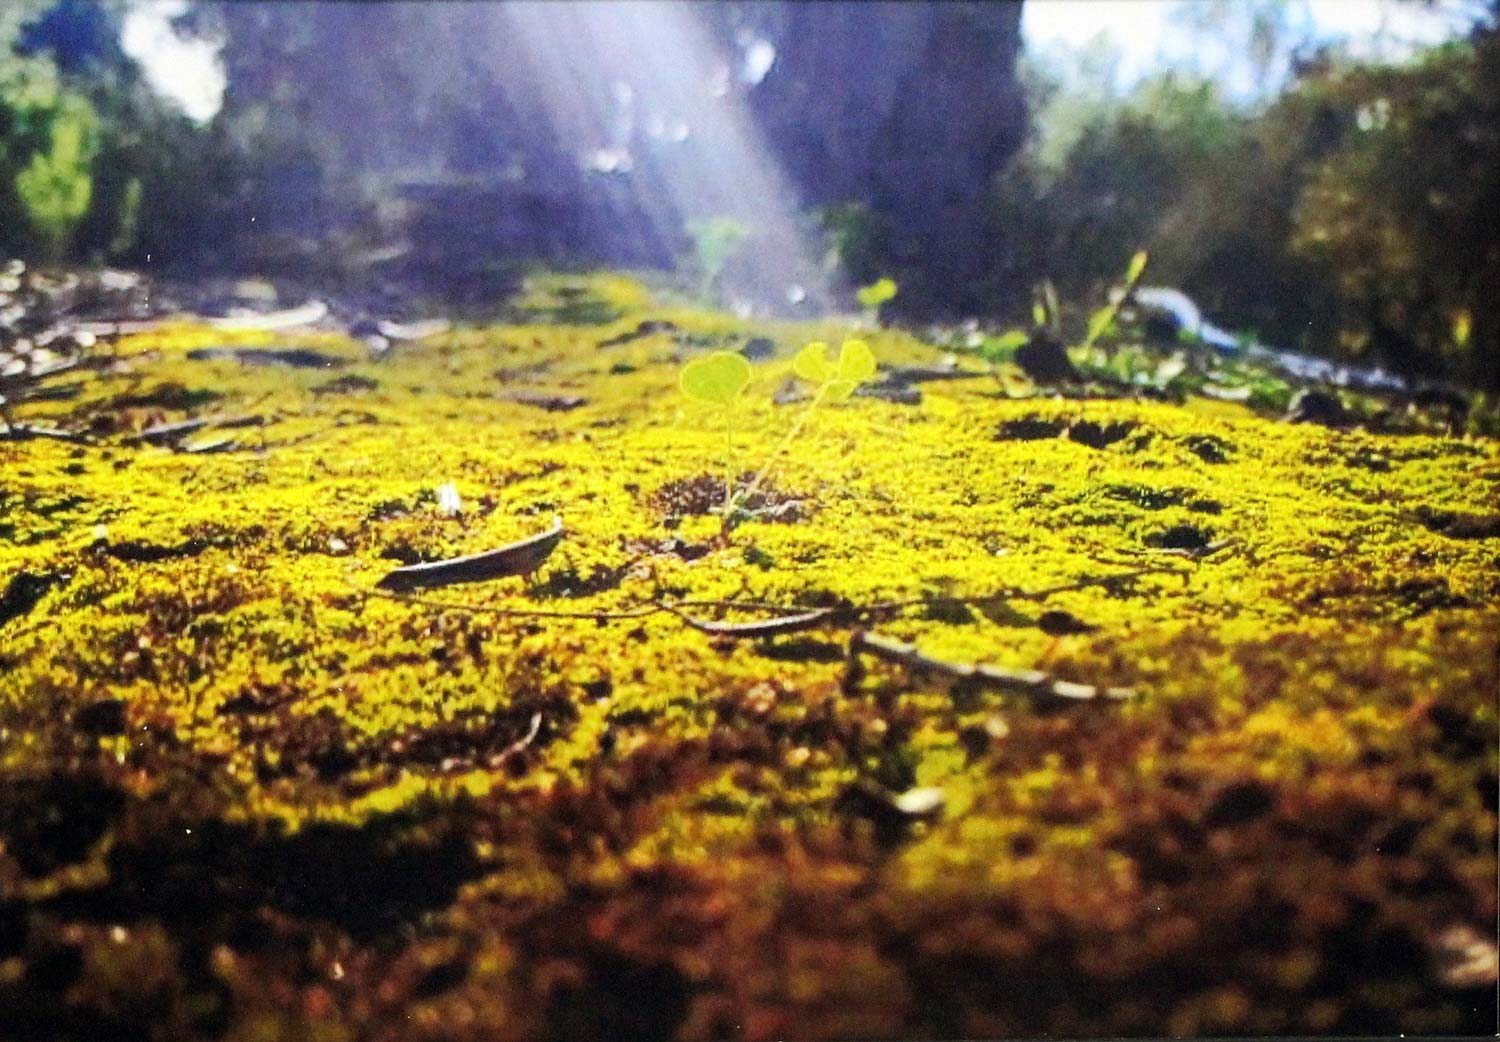 Student photograph of moss